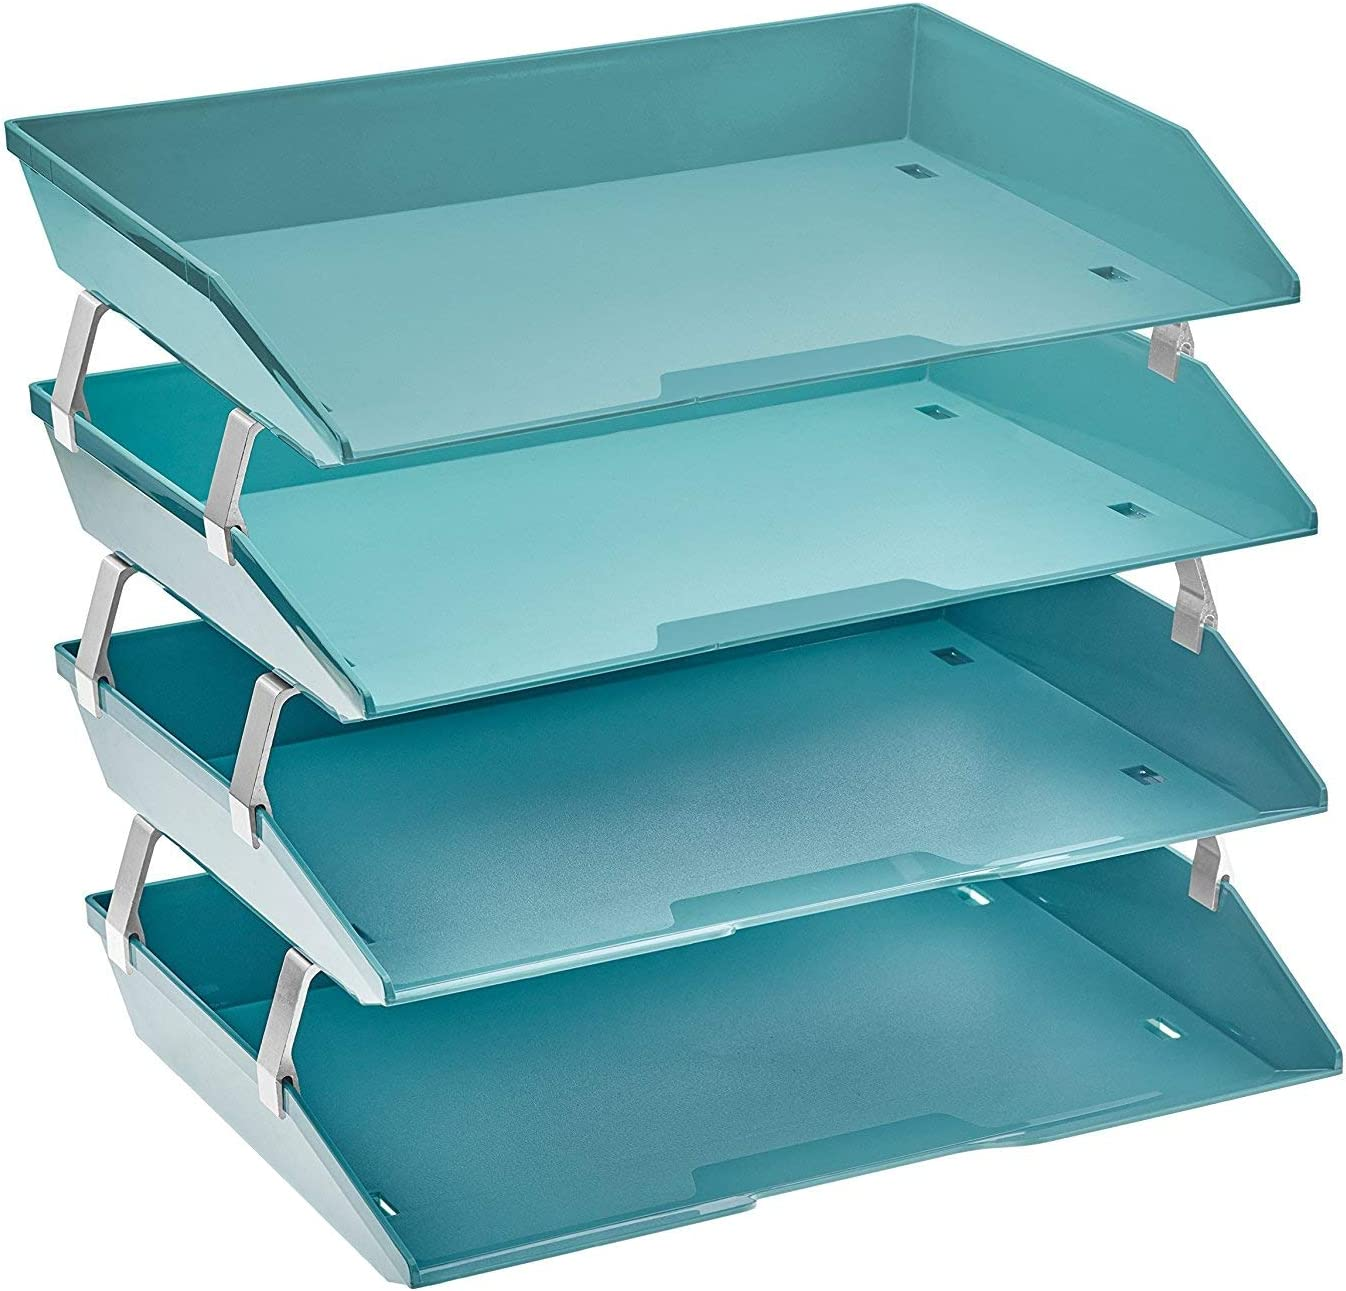 Acrimet Facility 4 Tier Limited time for free shipping Letter Tray Fi Plastic Desktop Load Fashion Side